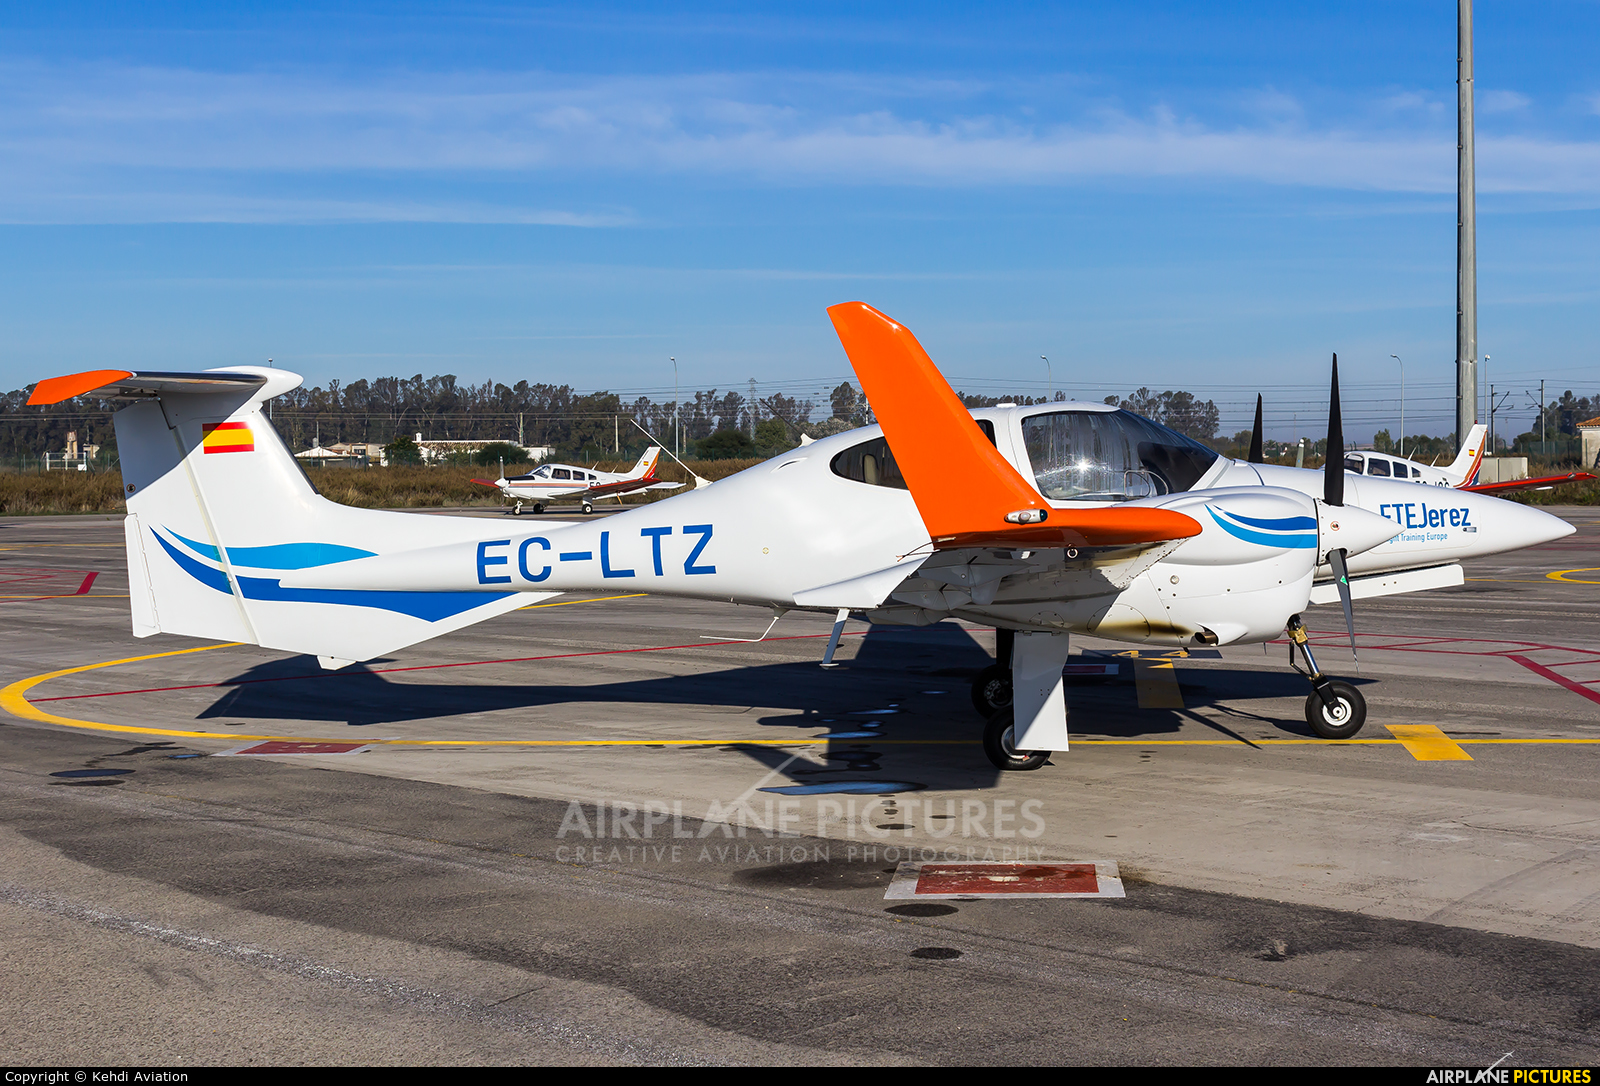 Private EC-LTZ aircraft at Jerez de la Frontera